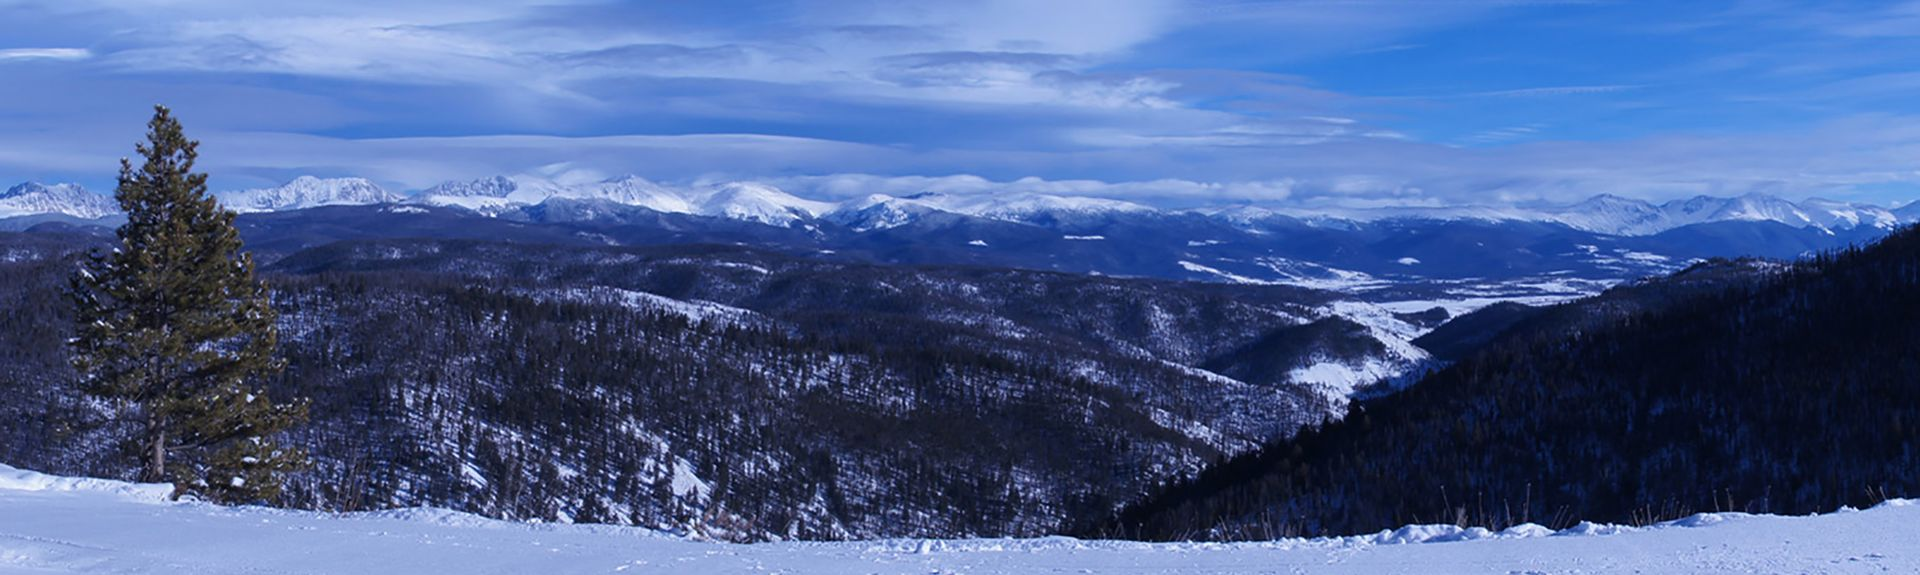 The Mountainside, Granby, Colorado, United States of America